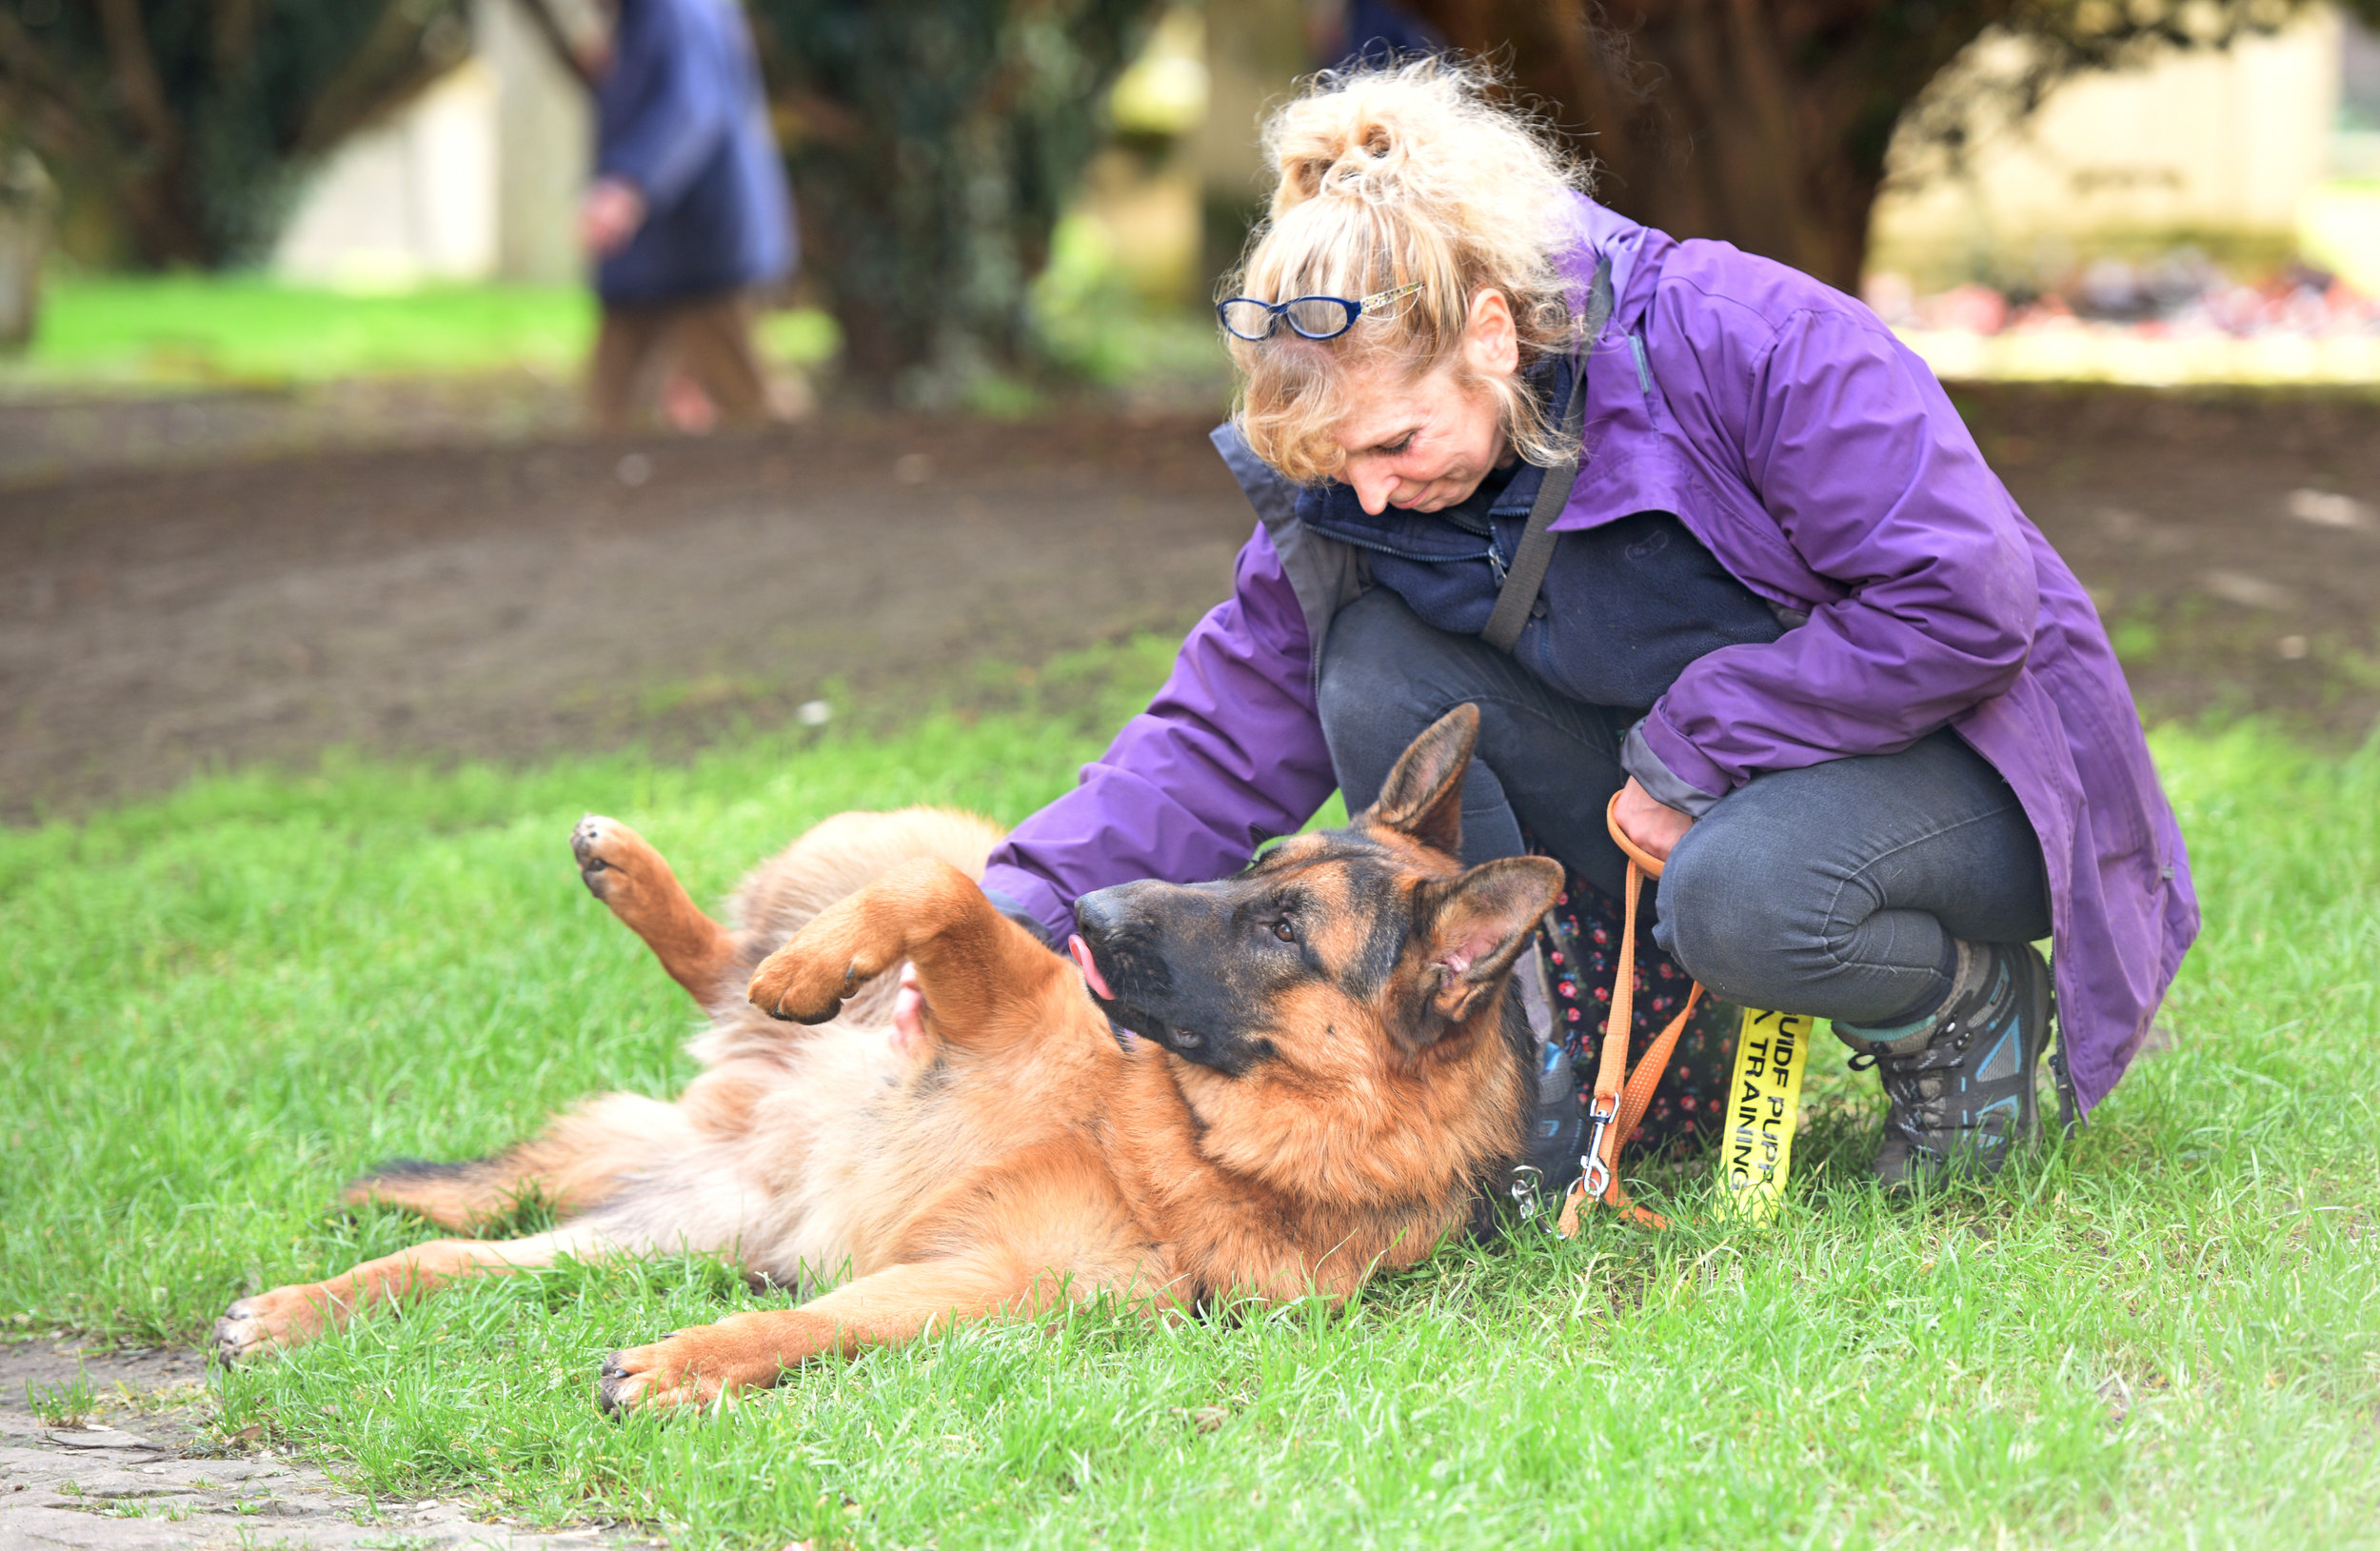 They might be big working dogs but they're real softies, too